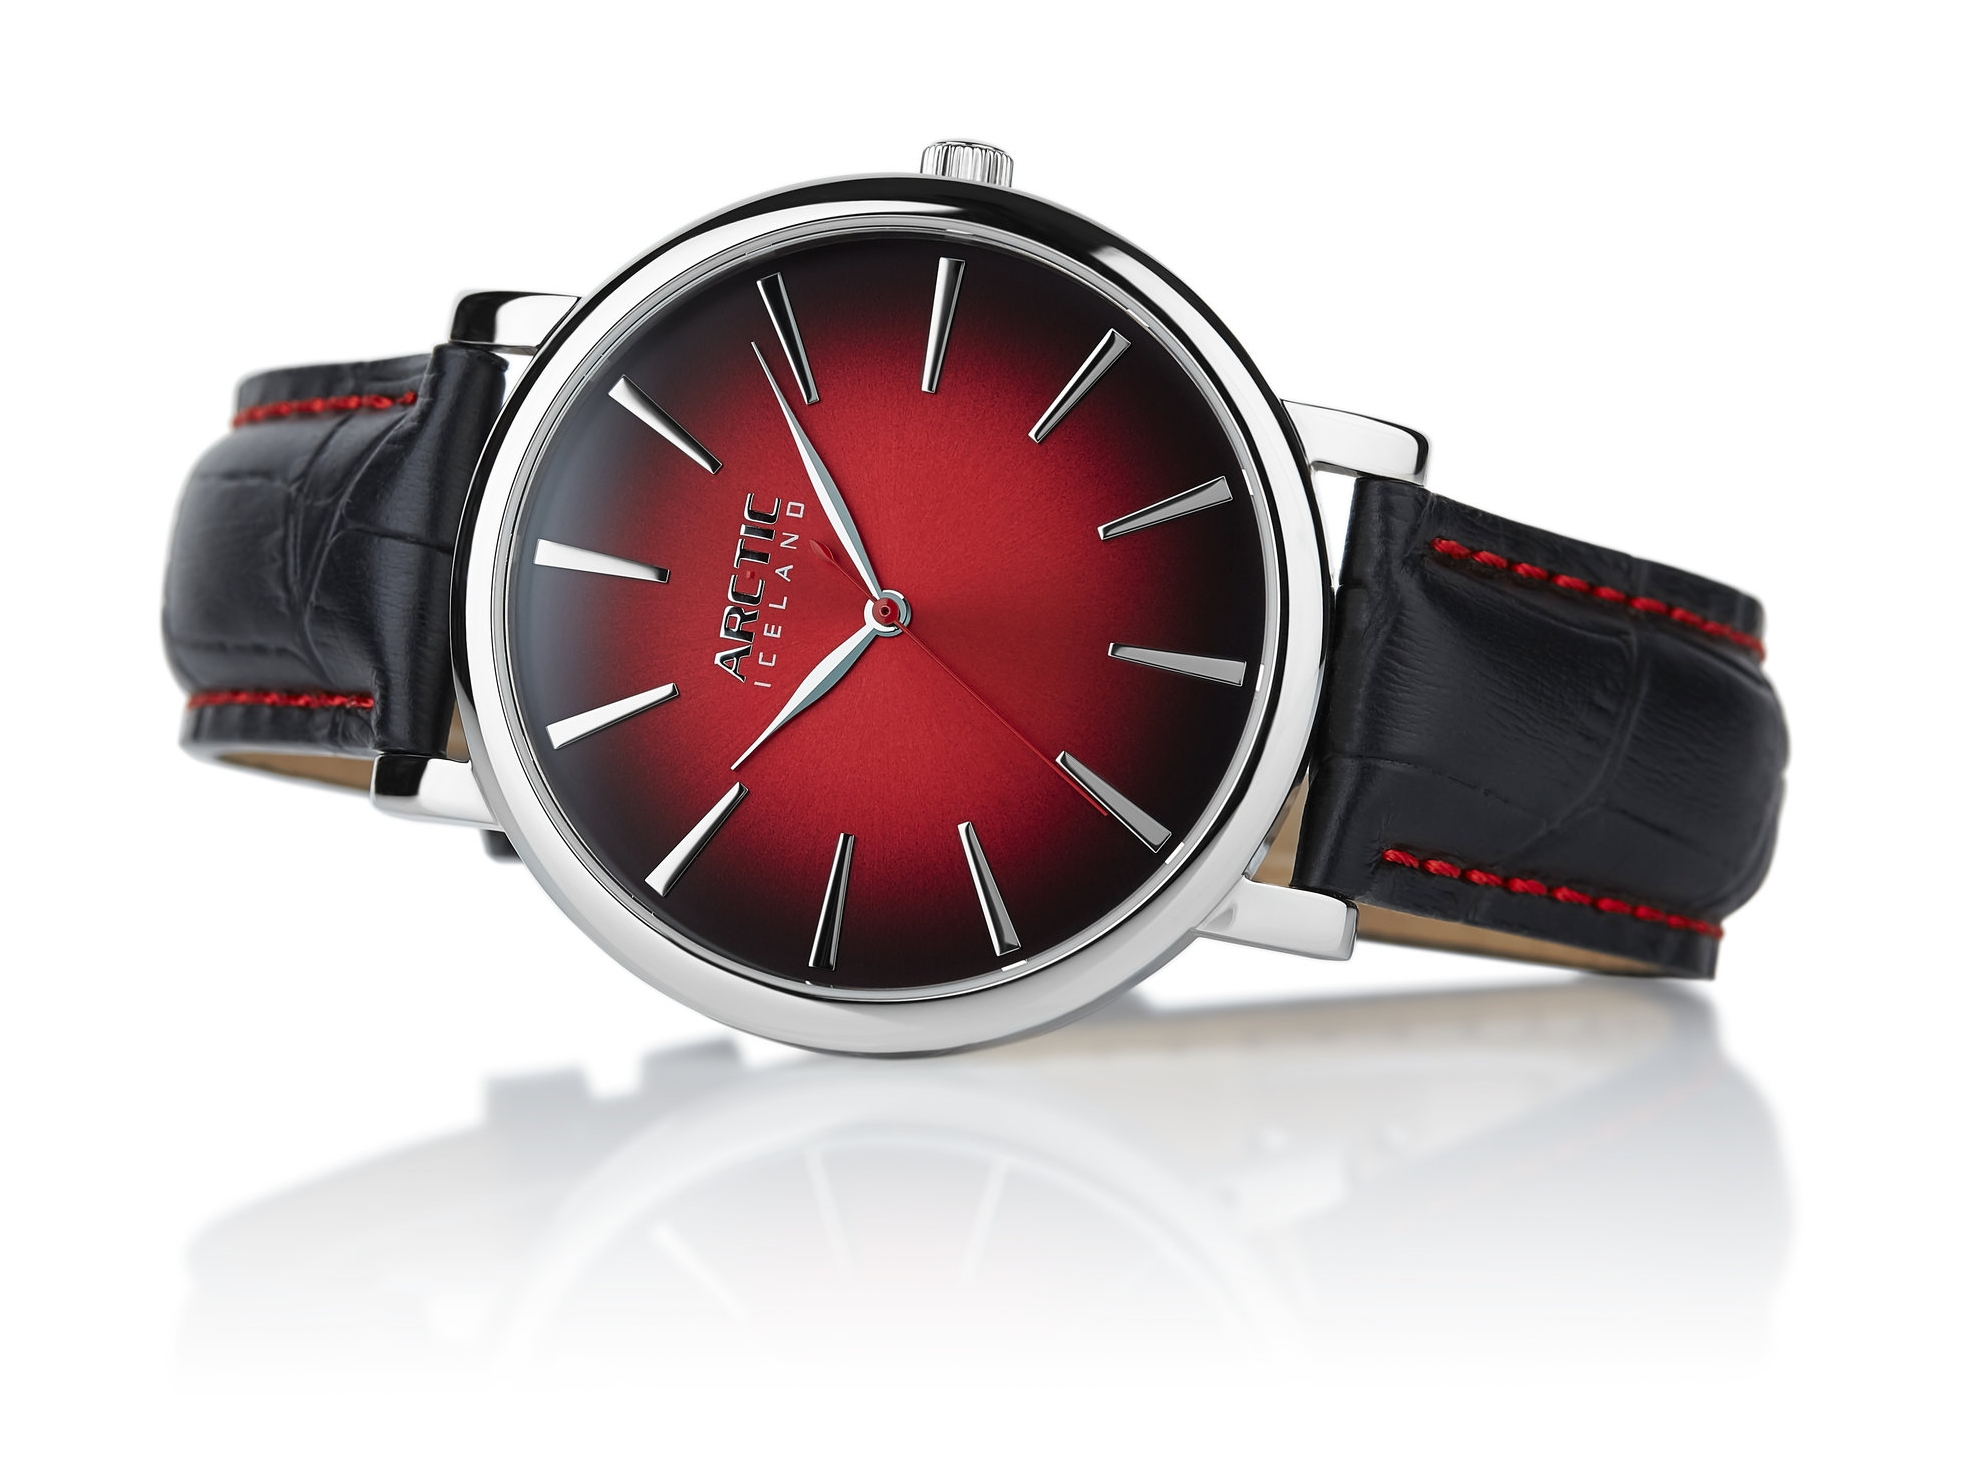 ARC-TIC Iceland Retro red 42mm or 36mm with black leather strap -   Learn More